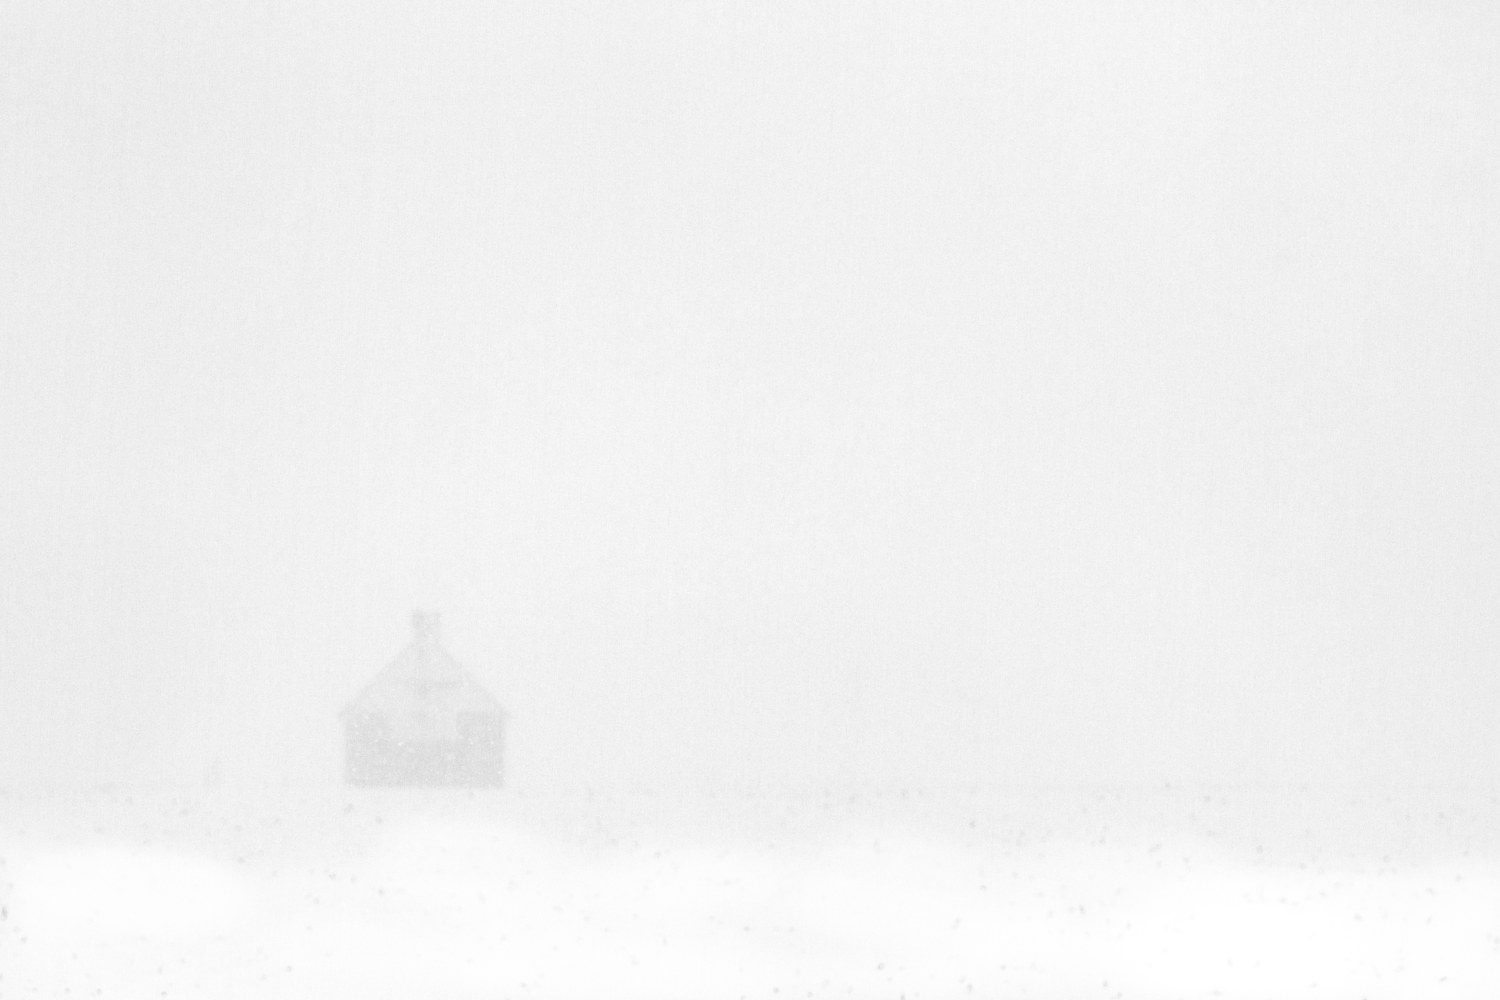 Cropsy Shed White-Out 2-2015_MG_9472-Edit by Theodore Diamond